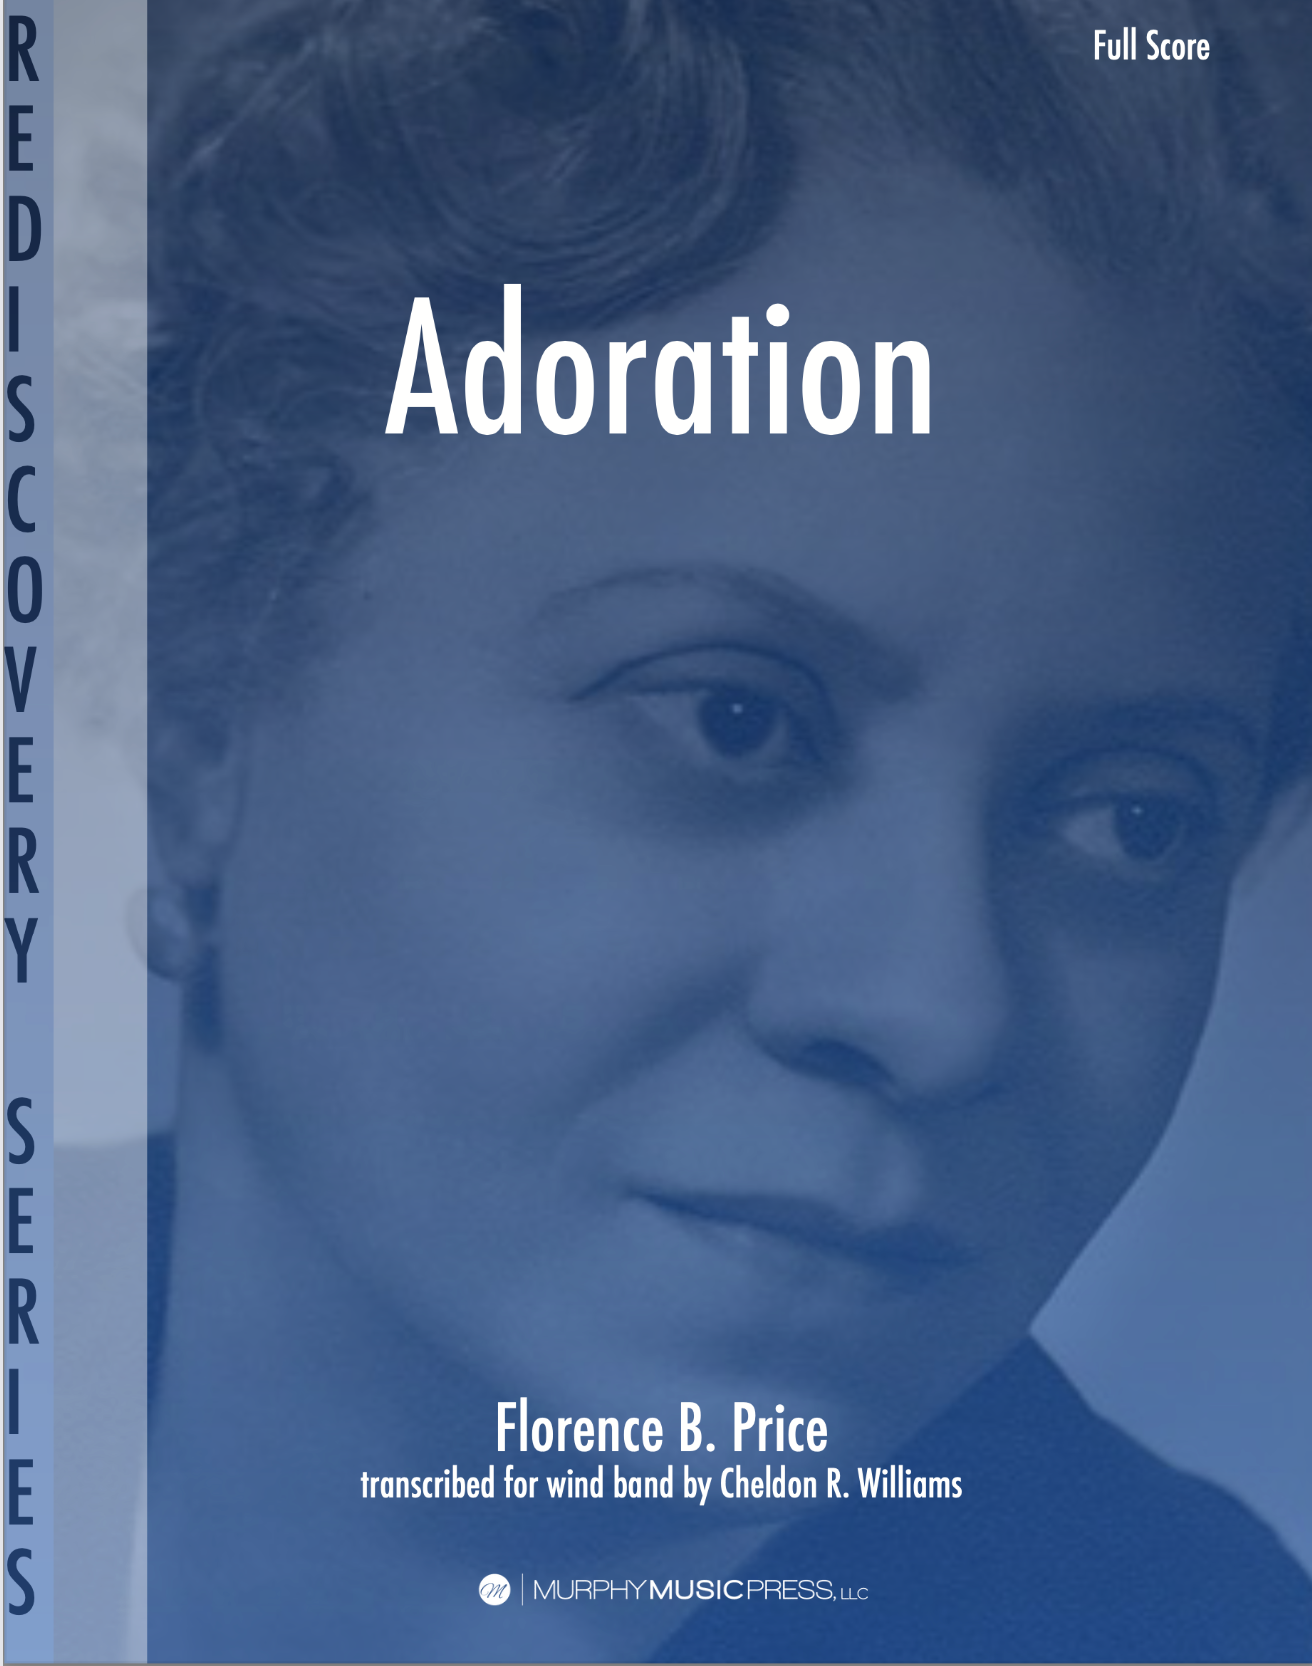 Adoration by Price, arr. Alexandra Dee